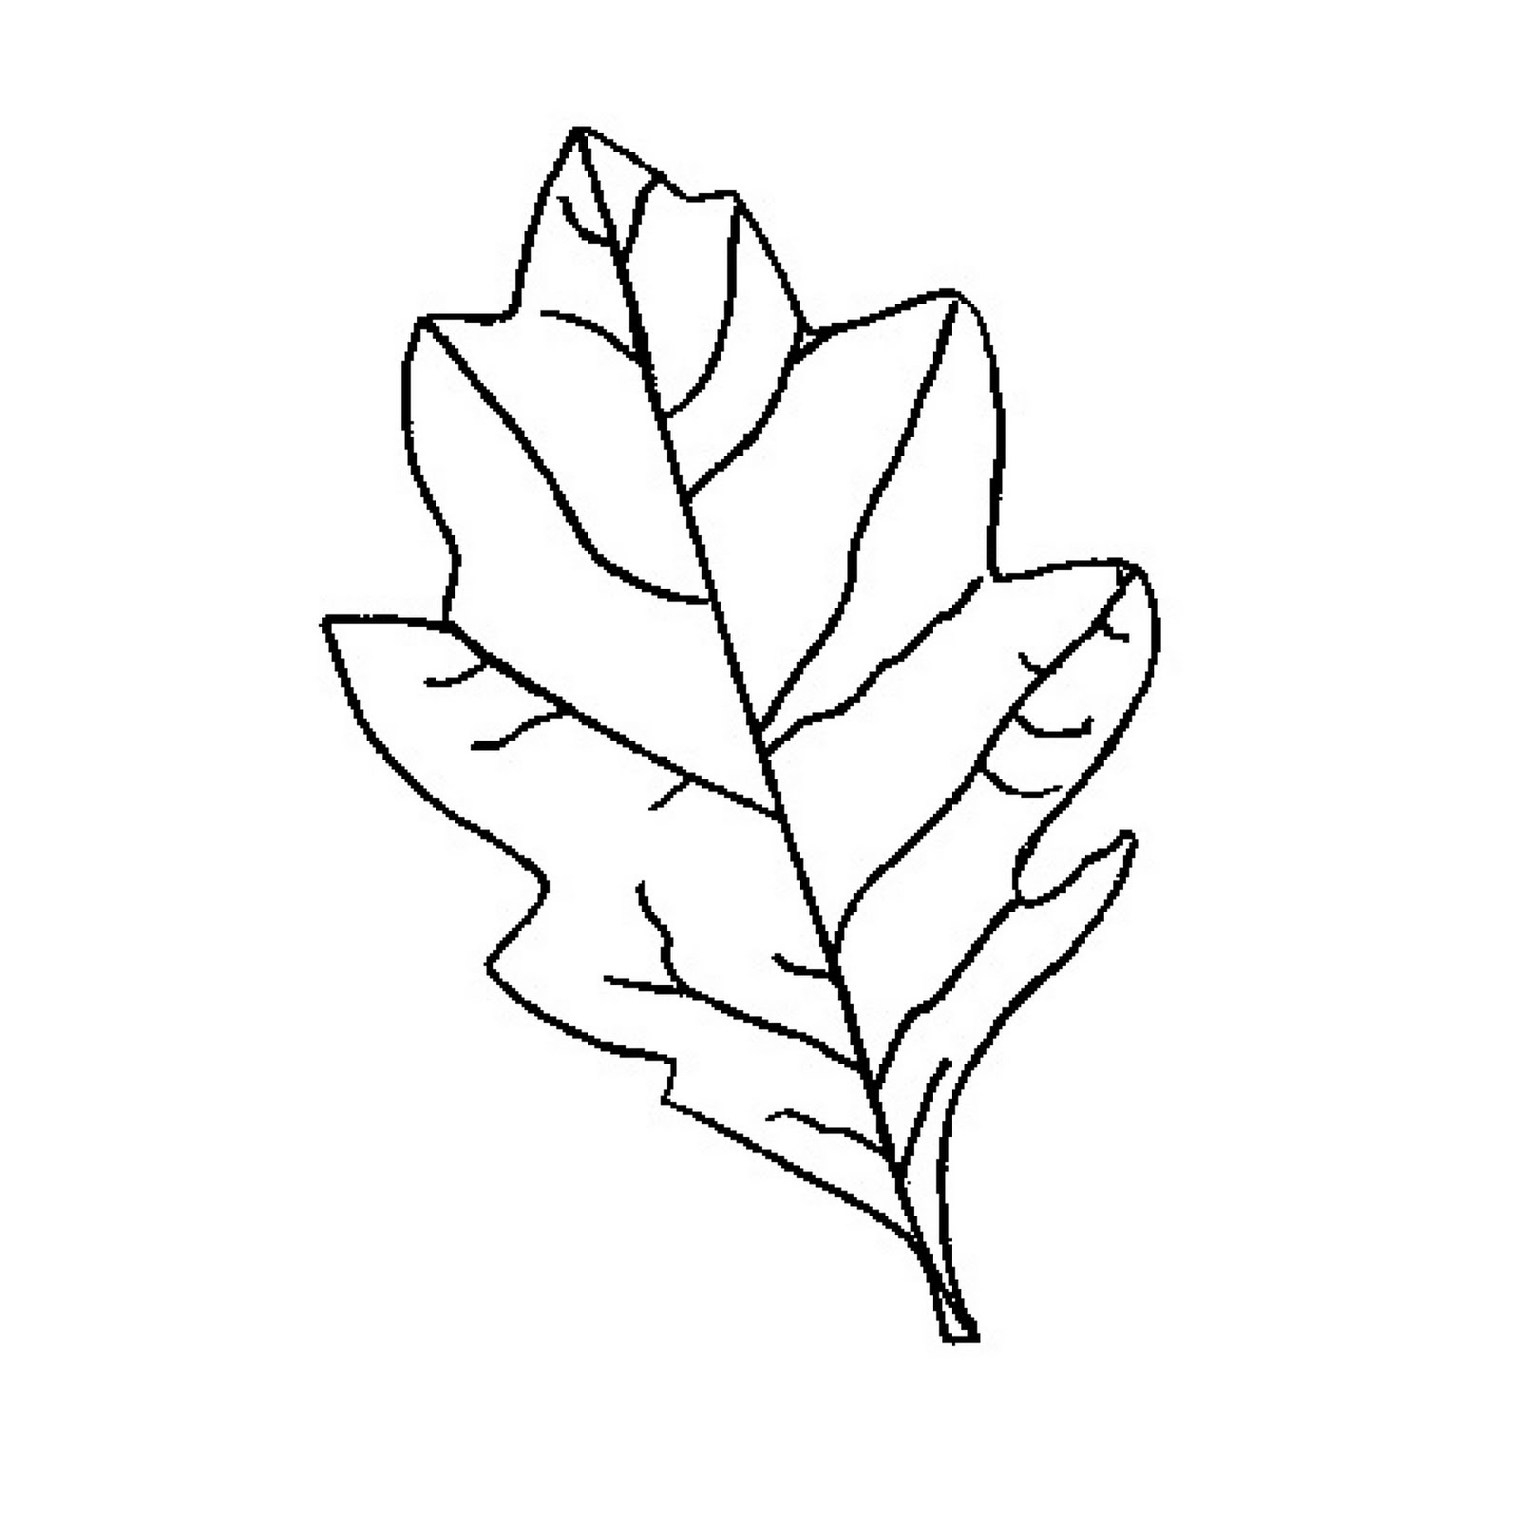 Oak Leaf Outline Group With 80+ Items - Free Printable Oak Leaf Patterns